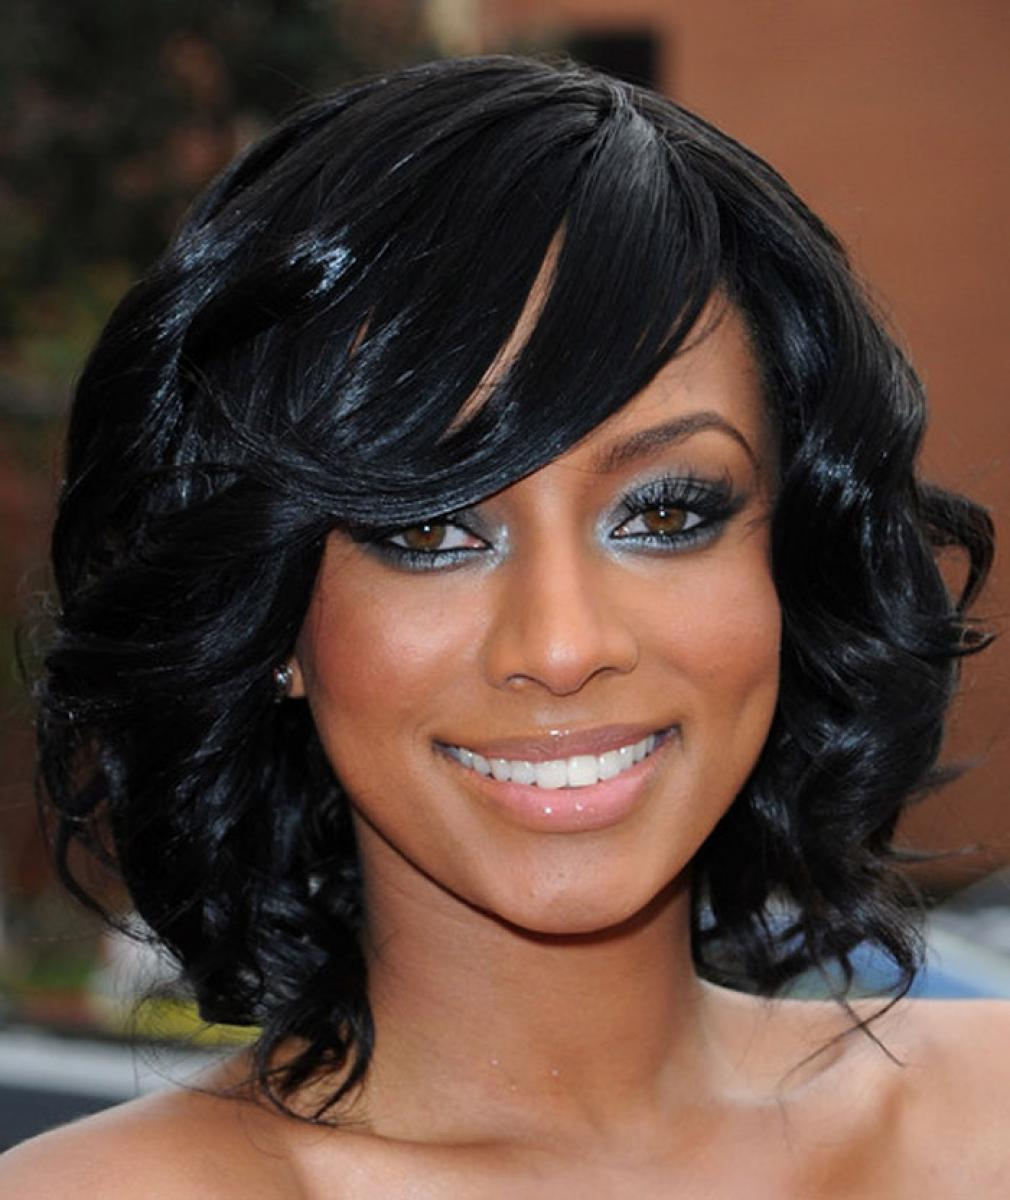 Swell Pictures Of Black Bob Hairstyles For Black Women Short Hairstyles Gunalazisus